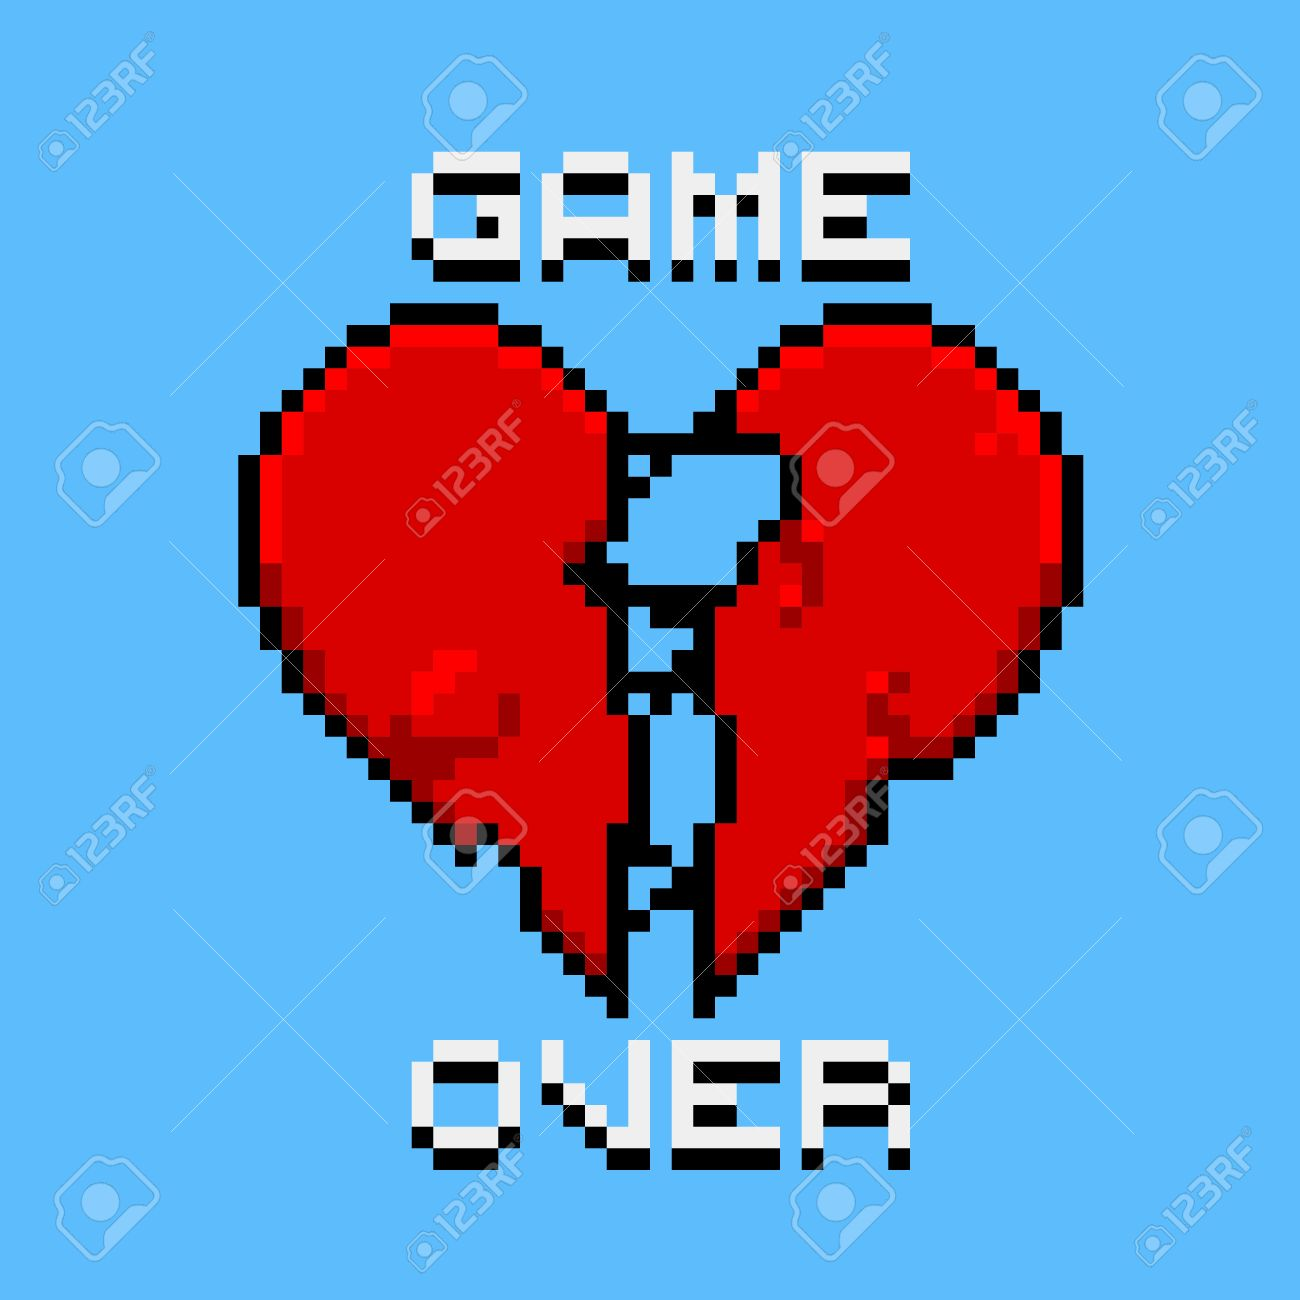 Game over, love is dead, broken heart, a dead player retro pixel